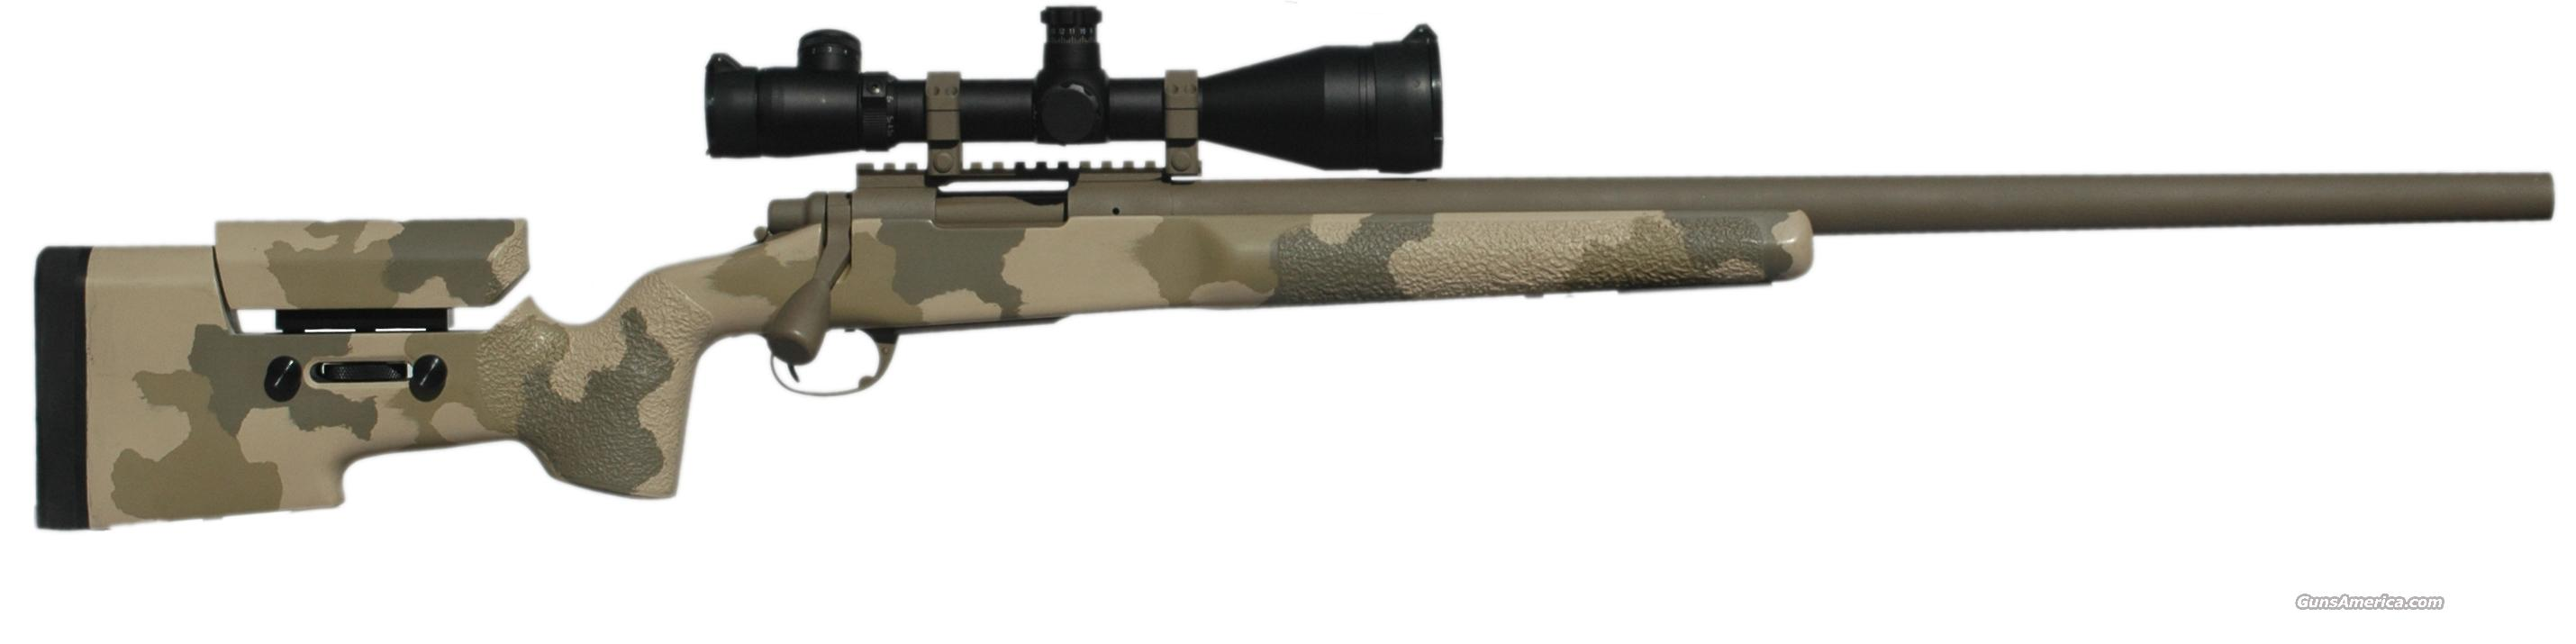 Tactical Rifles M40A5 30-06   Guns > Rifles > Tactical/Sniper Rifles